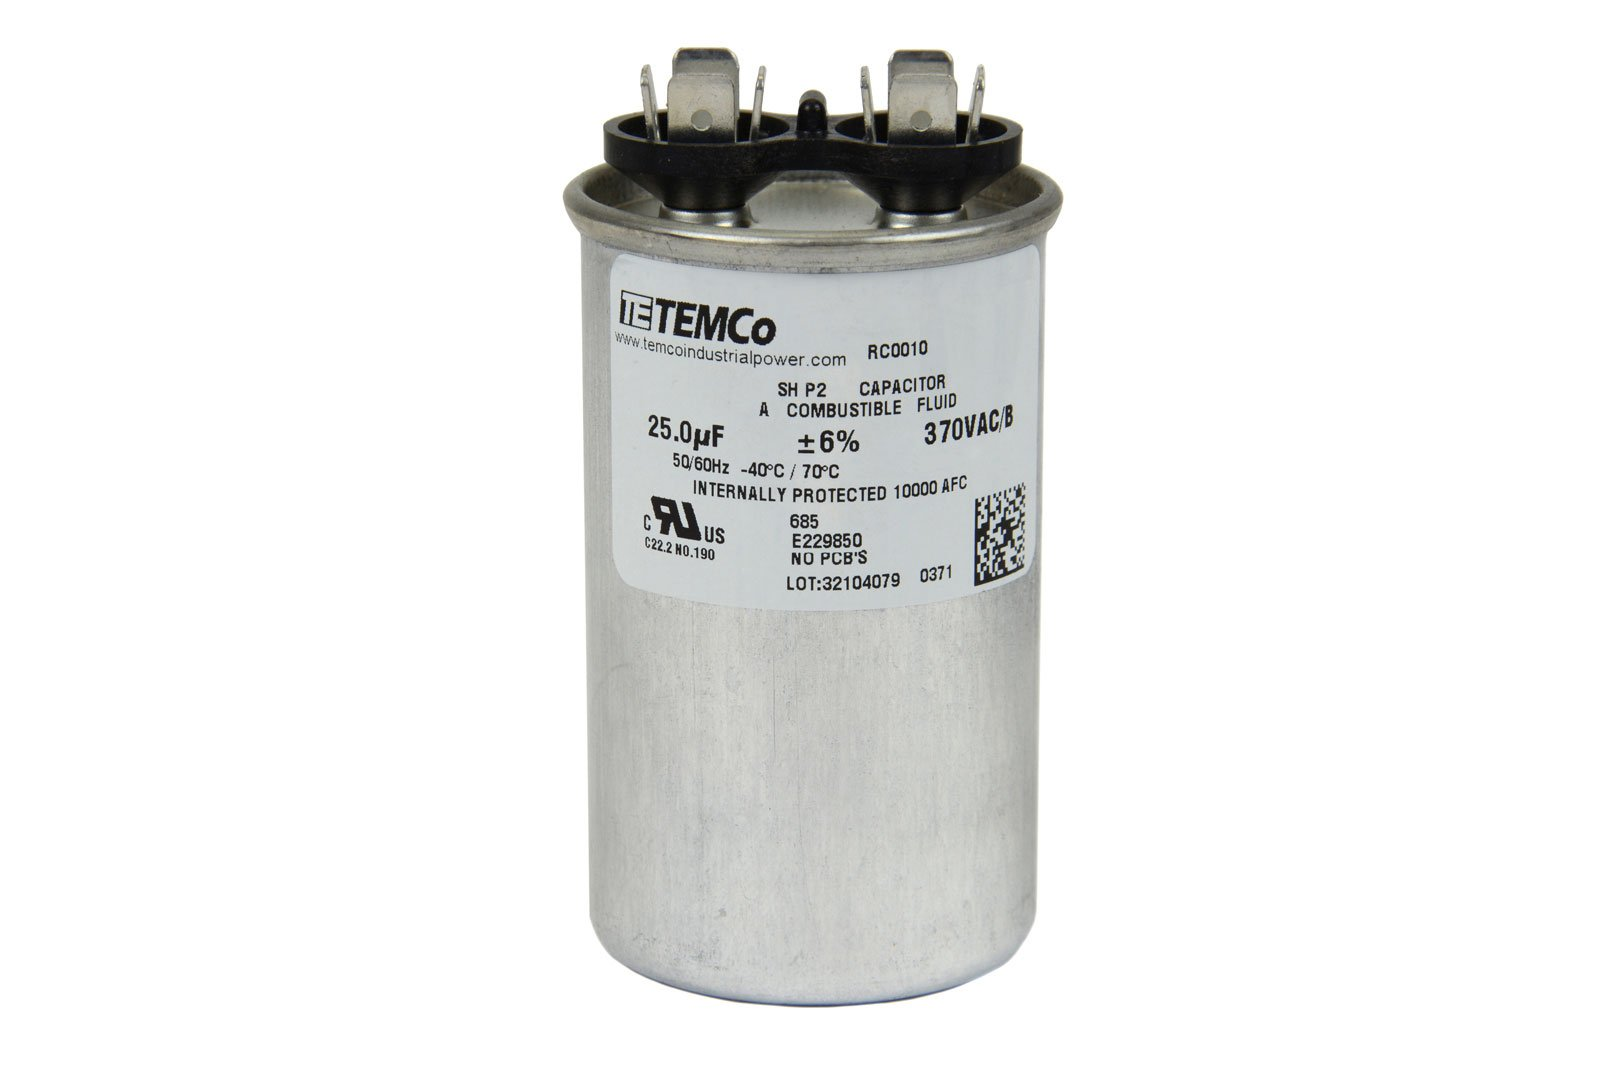 Temco motor run capacitor rc0010 25 mfd 370 v vac volt for Electric motor capacitor replacement